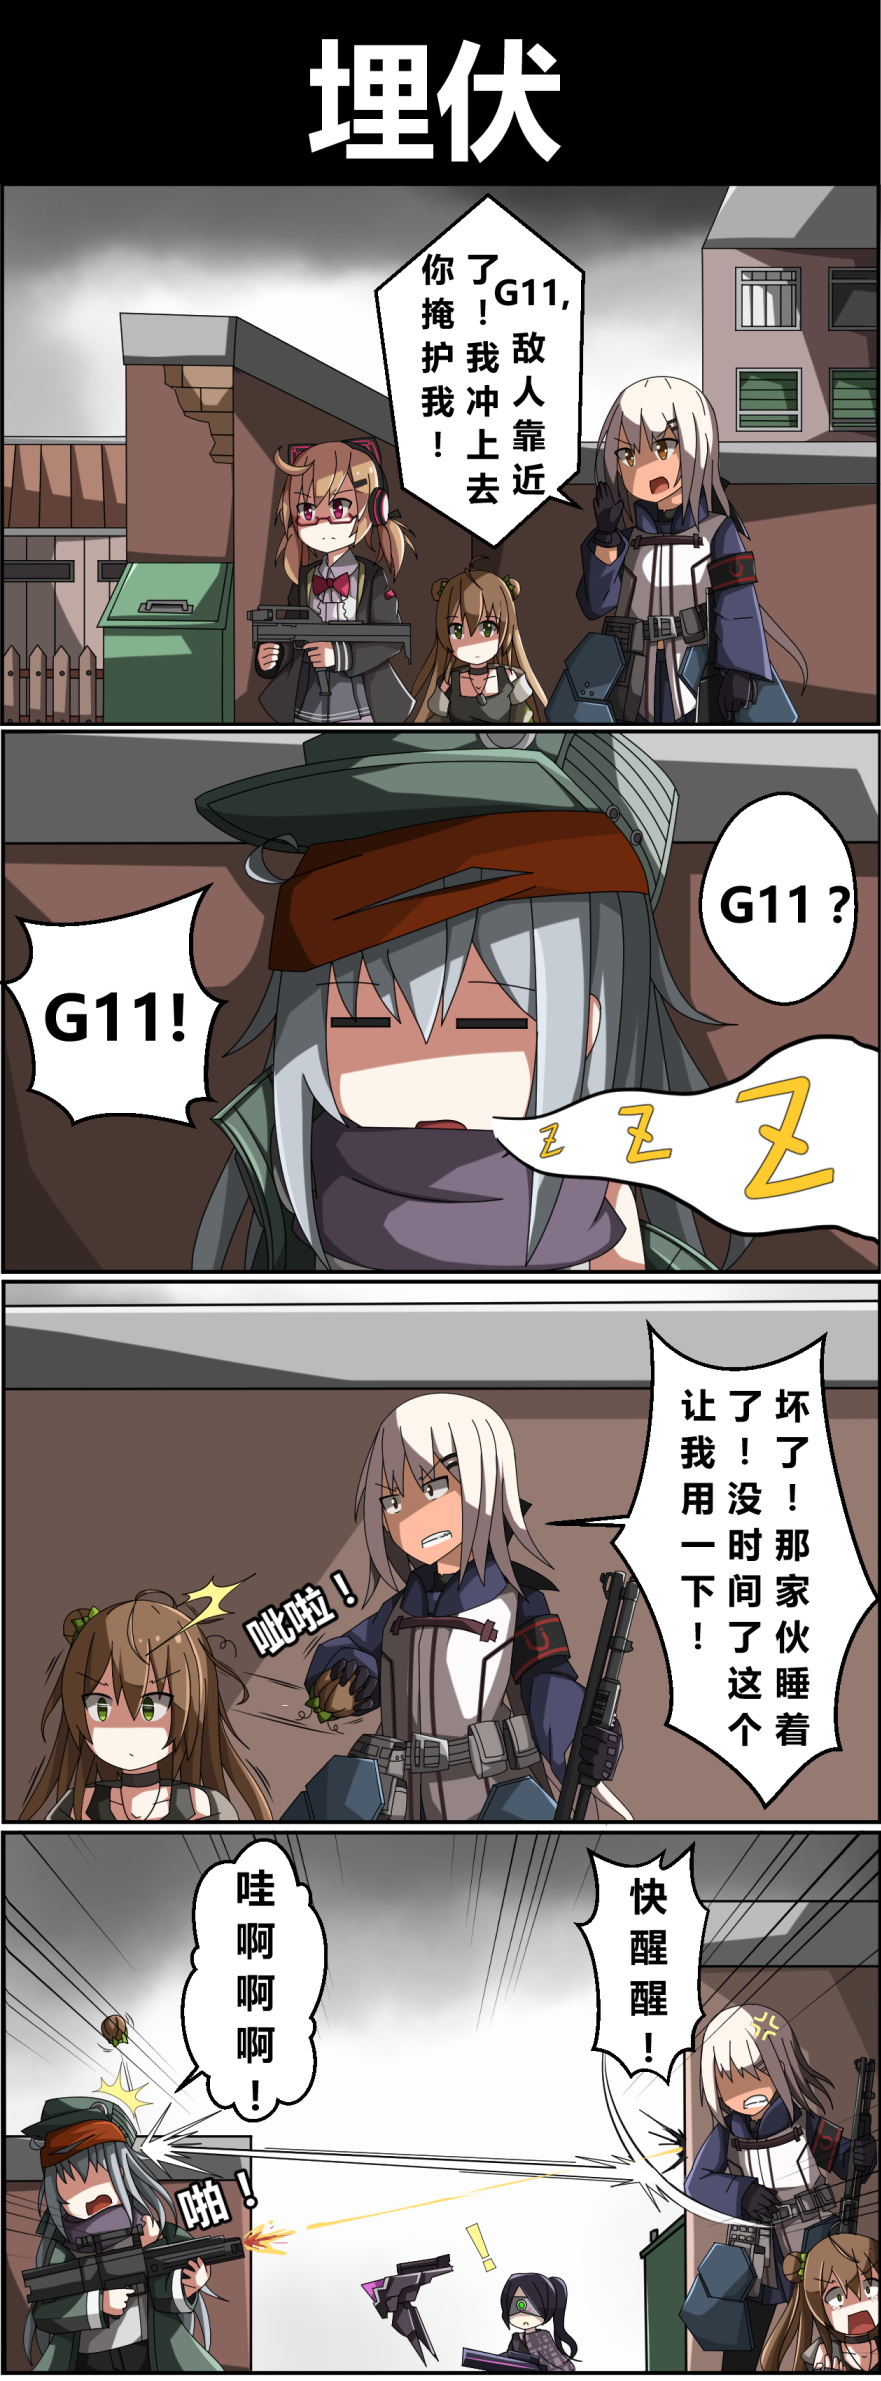 ! 4koma 5girls ac130 angry brown_hair chinese comic commentary commentary_request fmg-9_(girls_frontline) g11_(girls_frontline) girls_frontline glasses gun hair_pull hat highres long_hair mossberg_m590_(girls_frontline) multiple_girls rfb_(girls_frontline) shotgun silver_hair sleeping sniper translation_request weapon yellow_eyes zzz